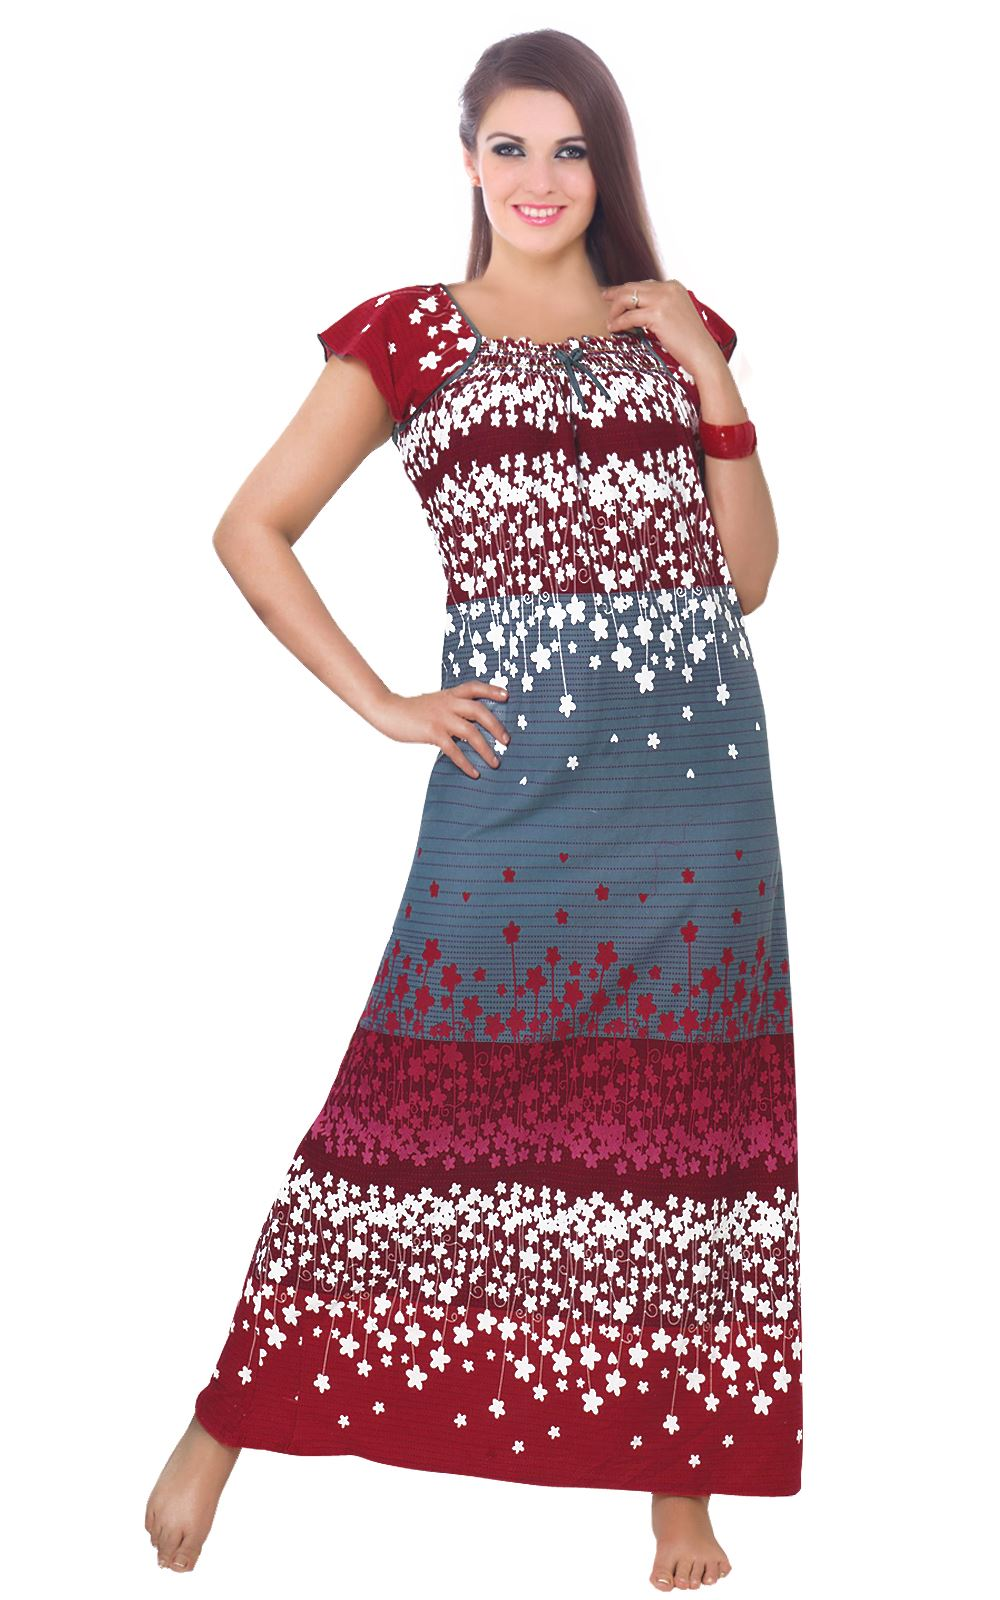 Cotton Rich Floral Nightdress [colour]- Hautie UK, #Nightfashion | #Underfashion